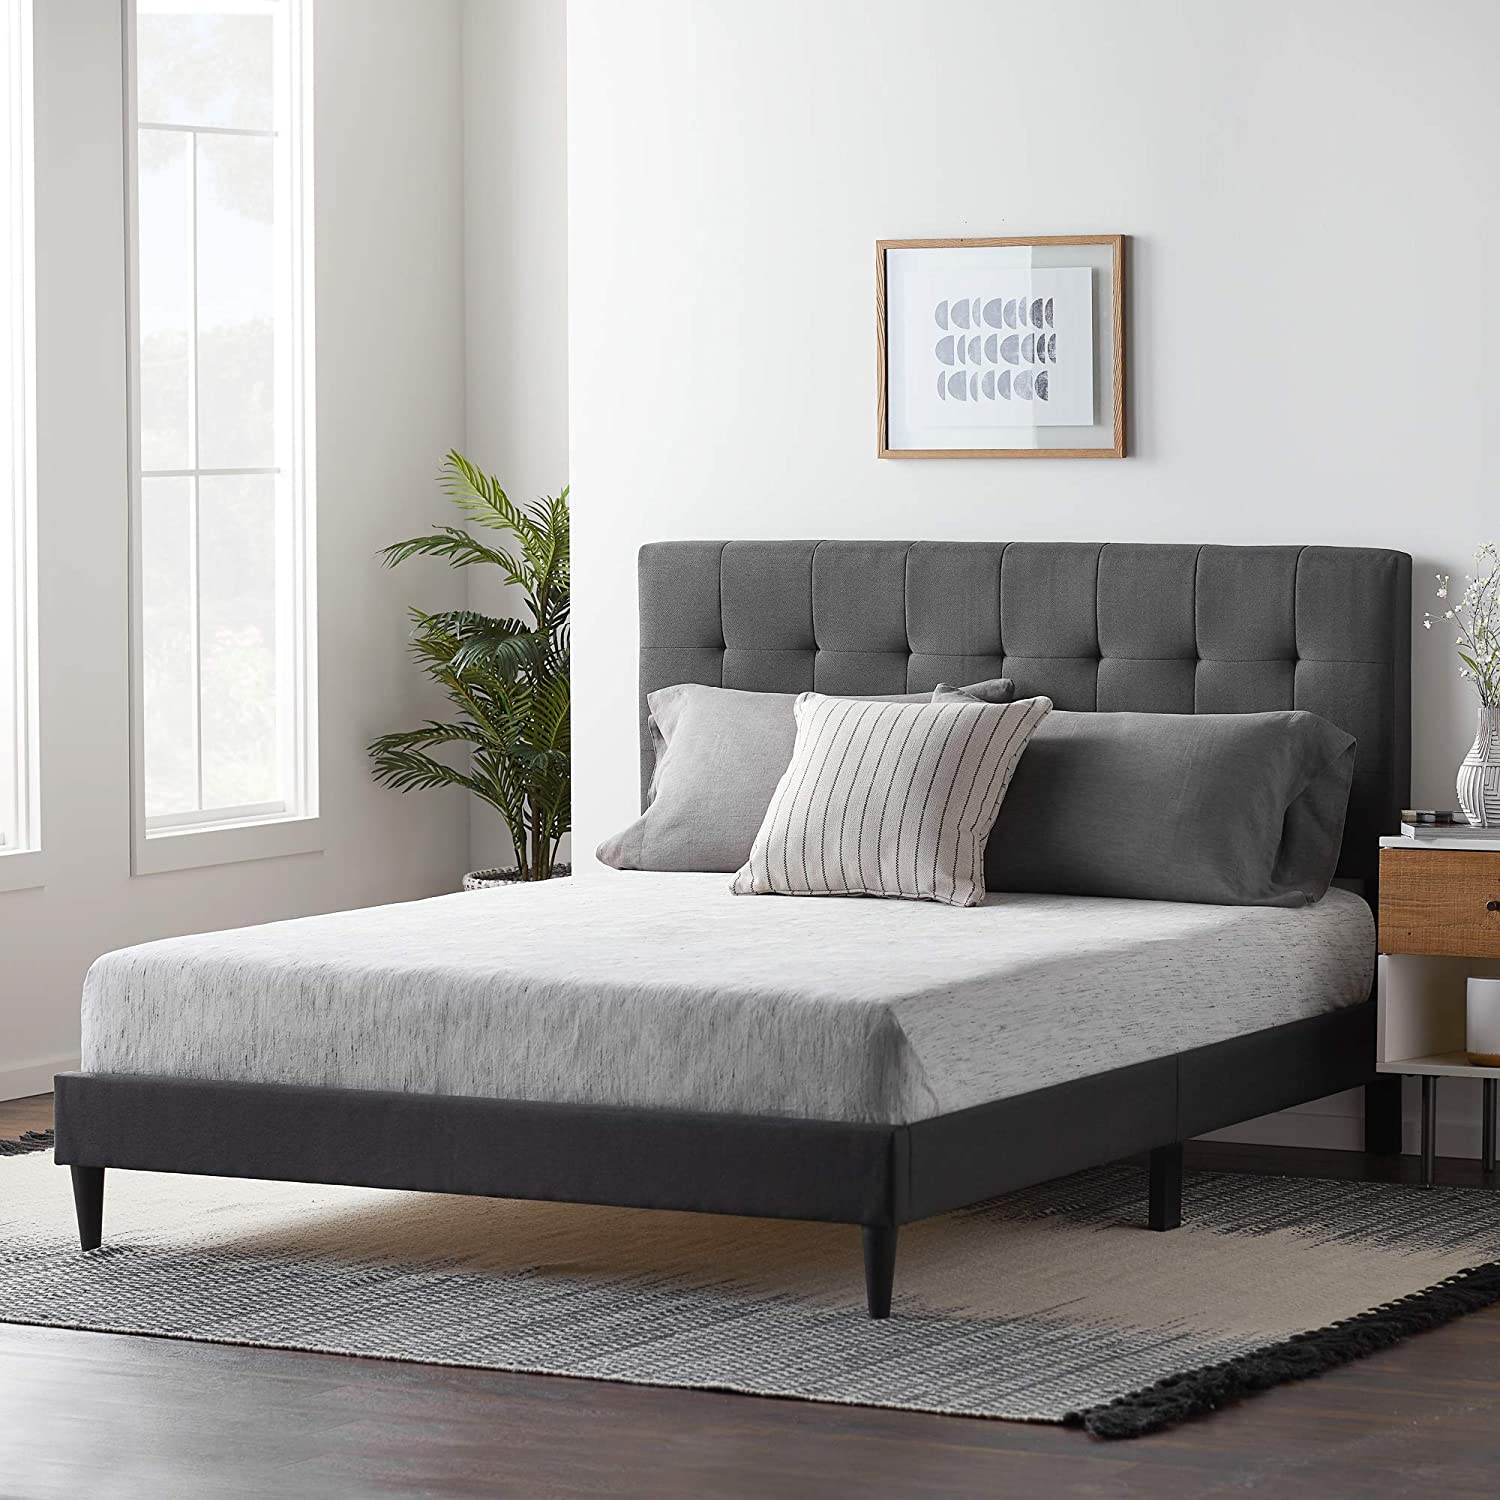 Lucid Upholstered Platform Bed Frame With Square Tufted Headboard Linen Inspired Fabric Sturdy Wood Construction No Box Spring Required Amazon Ca Home Kitchen